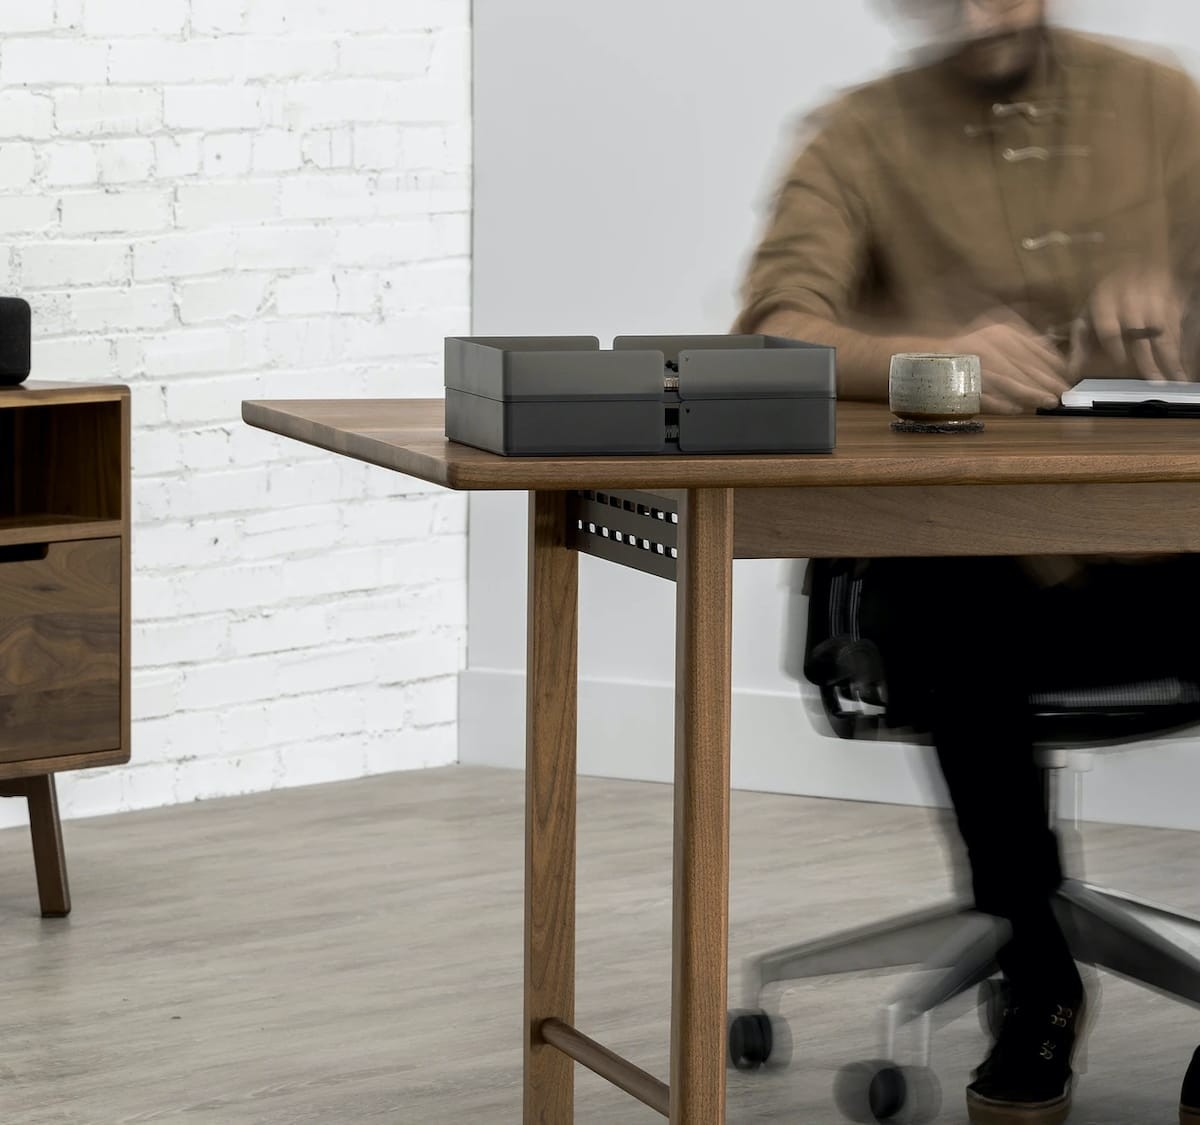 Artifox Walnut Table features cable management beneath the surface